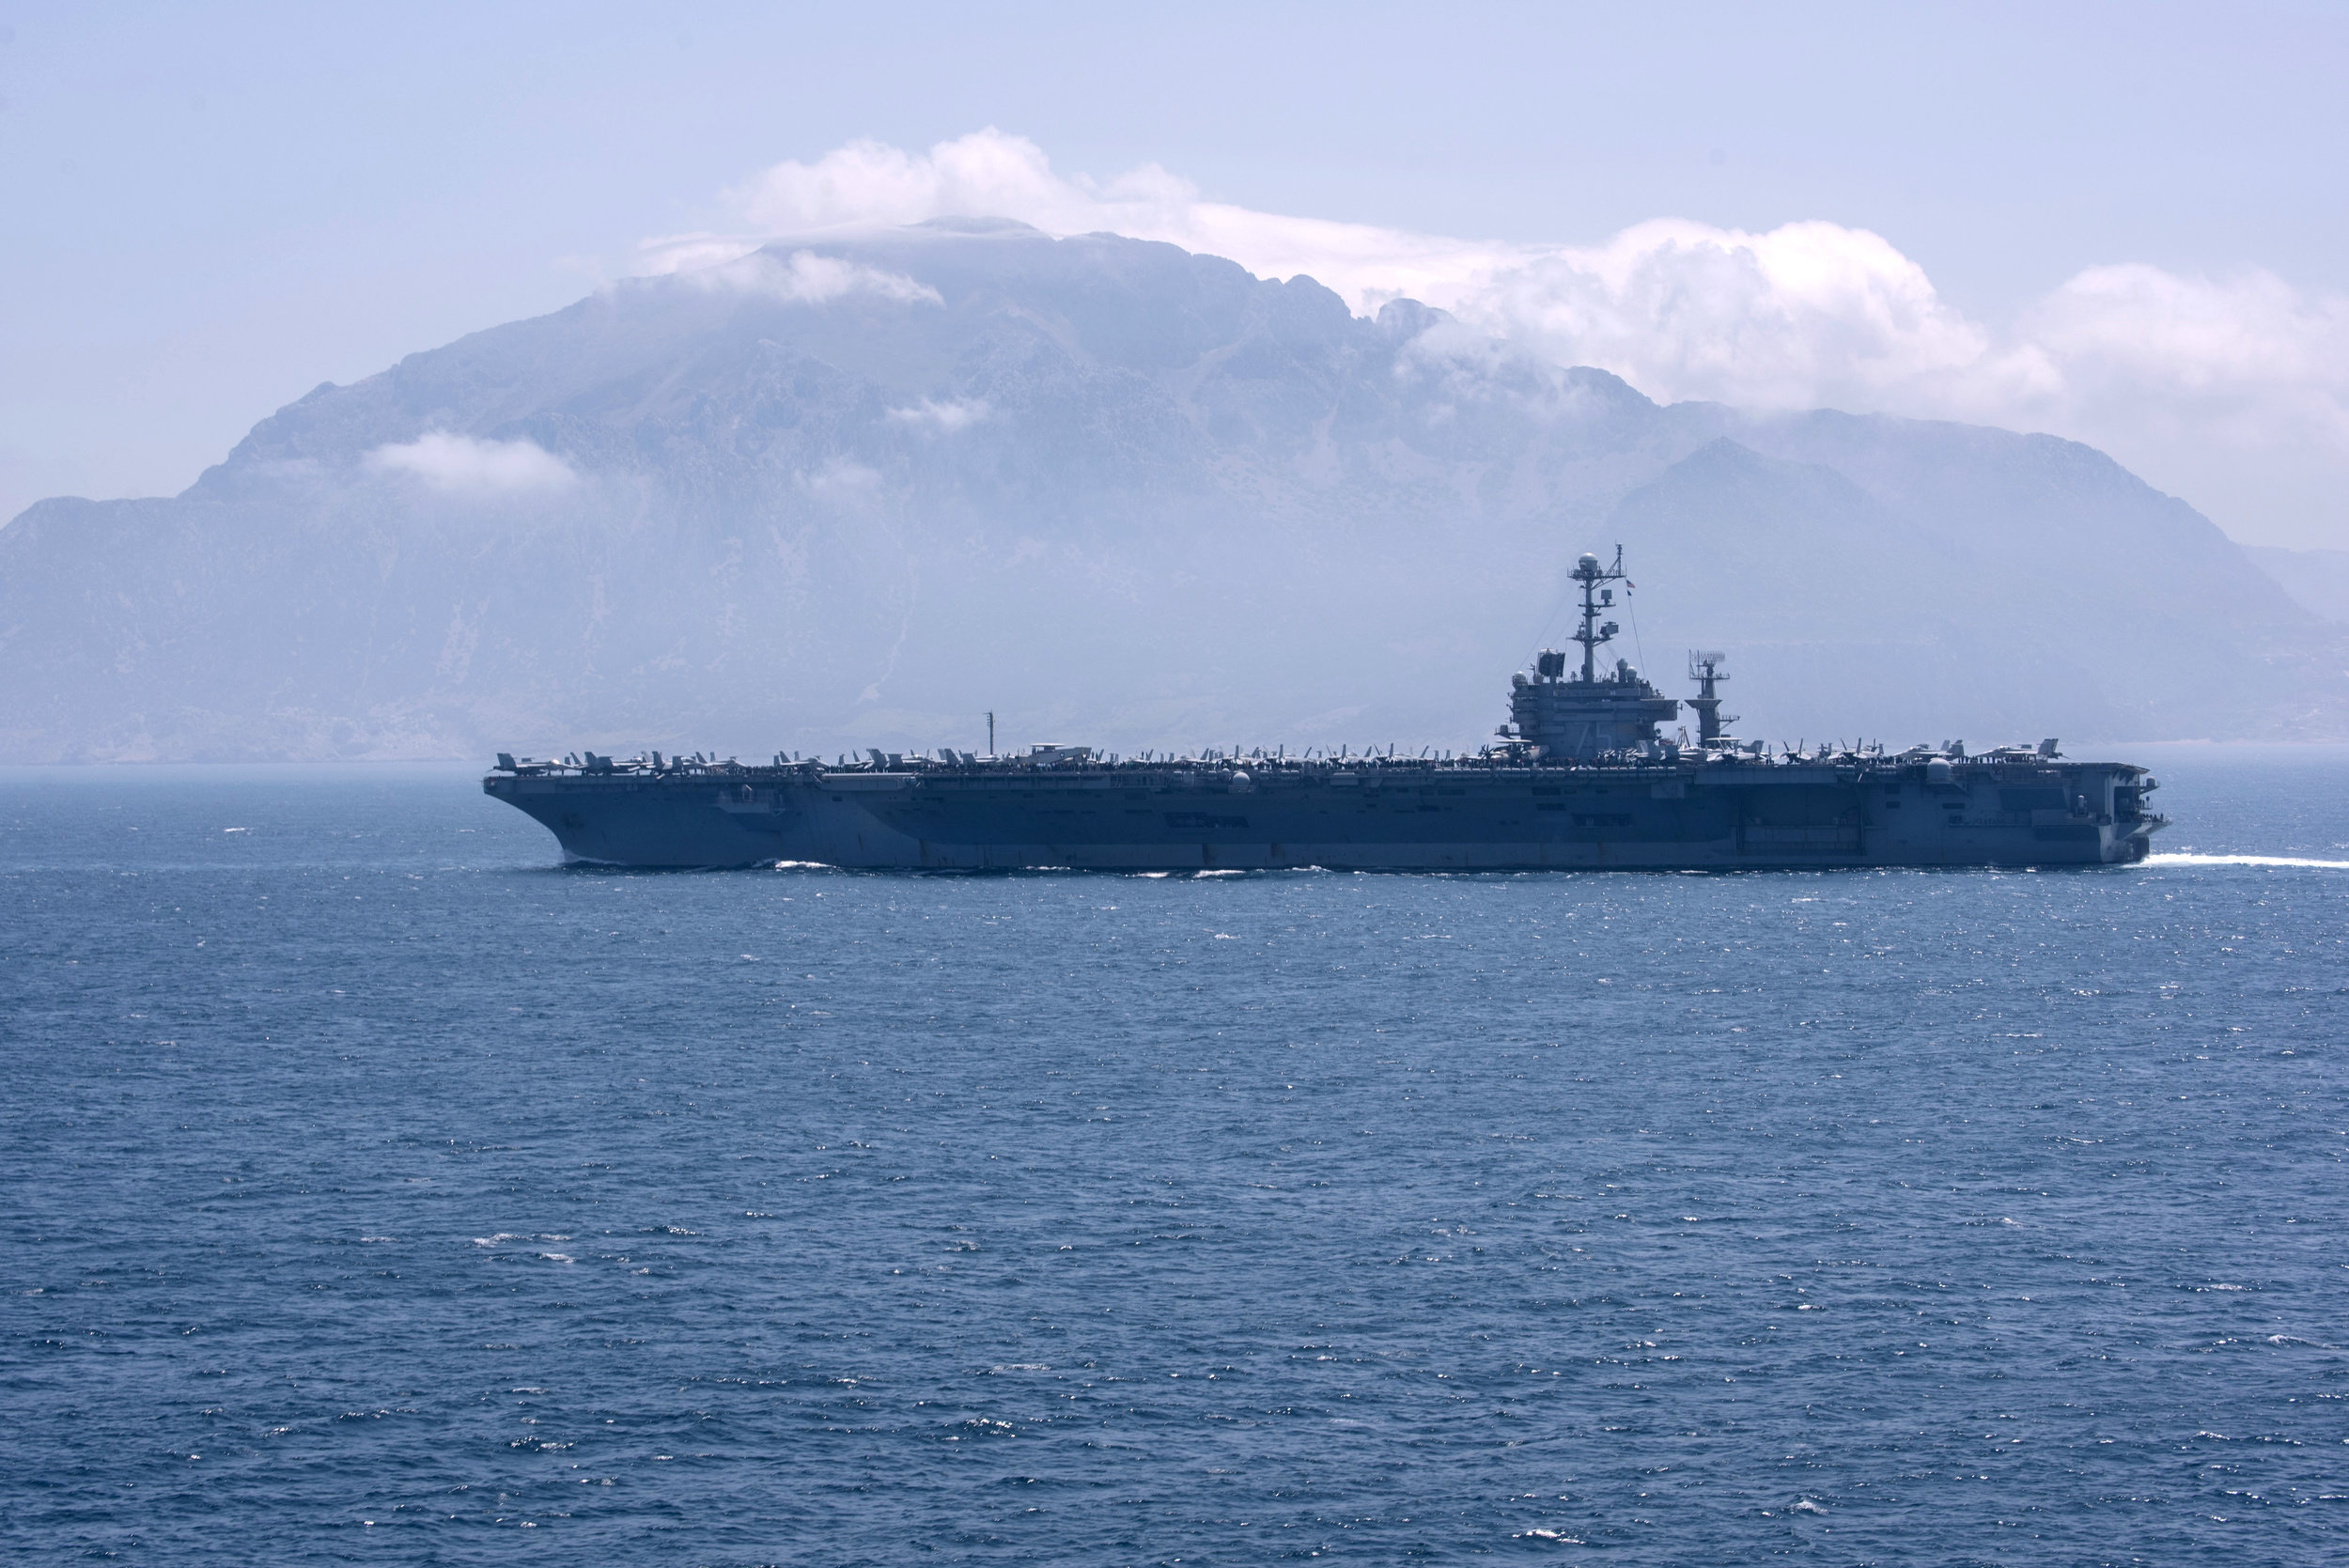 USS Harry S. Truman (CVN-75) conducts a strait transit. (U.S. Navy Photo)